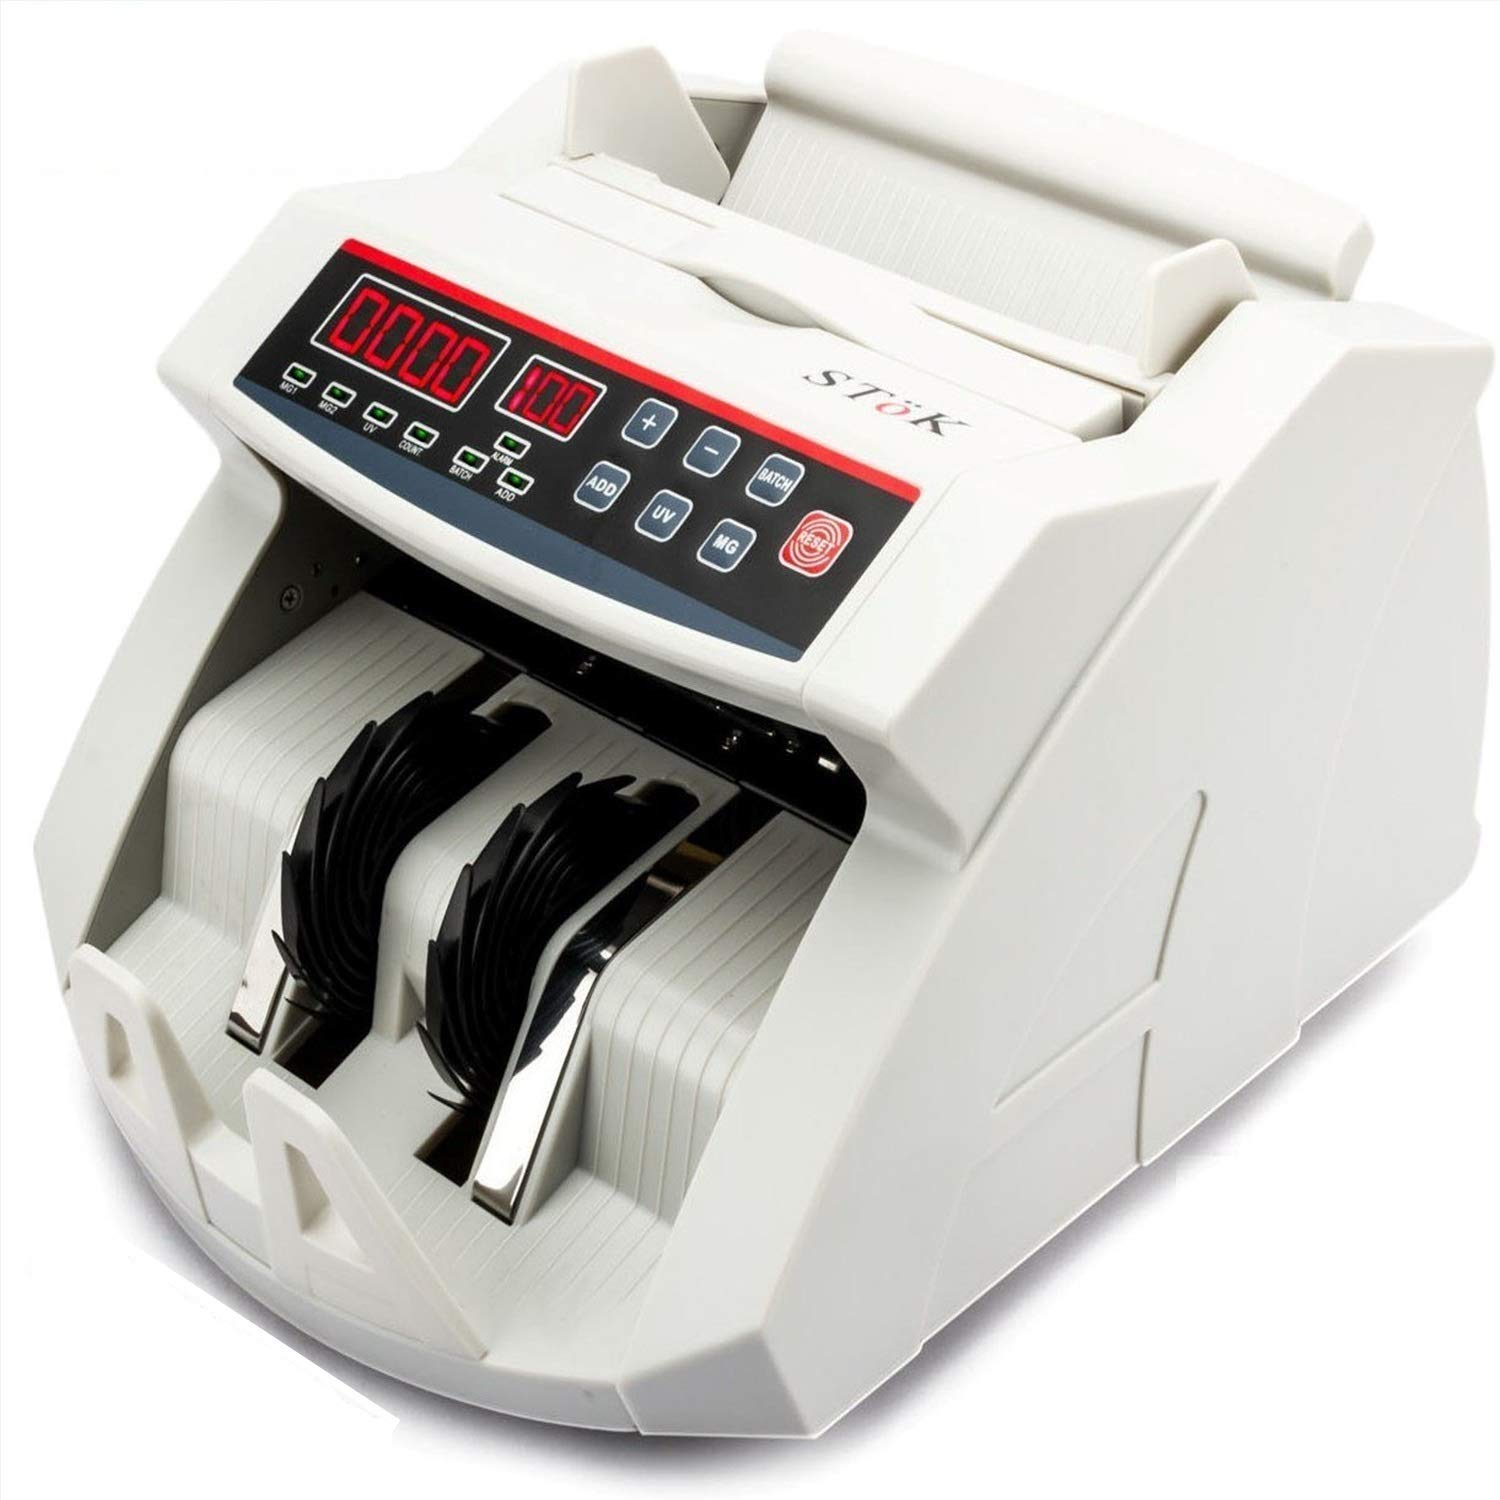 SToK ST-MC01 Note counting machine Compatible with Old & New INR